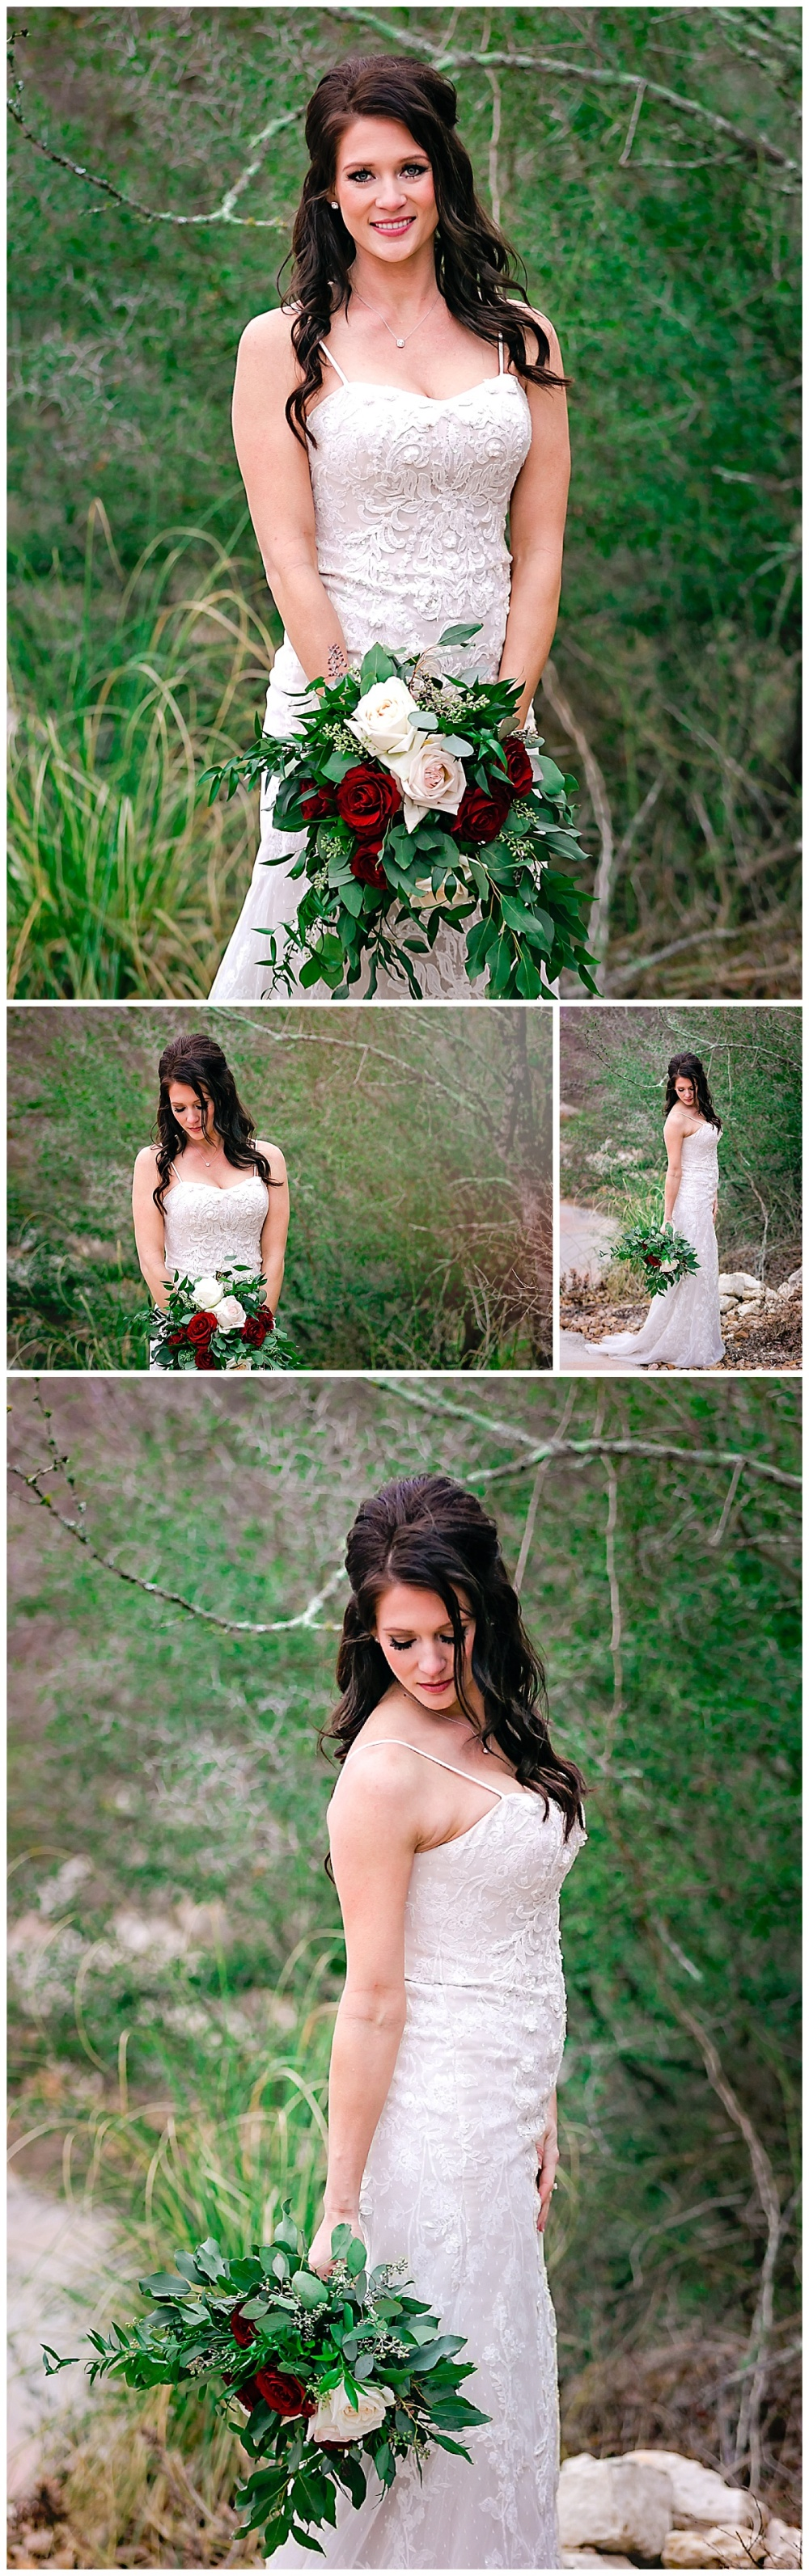 Carly-Barton-Photography-Geronimo-Oaks-Wedding-Venue-Texas-Hill-Country-Ronnie-Sarah_0074.jpg